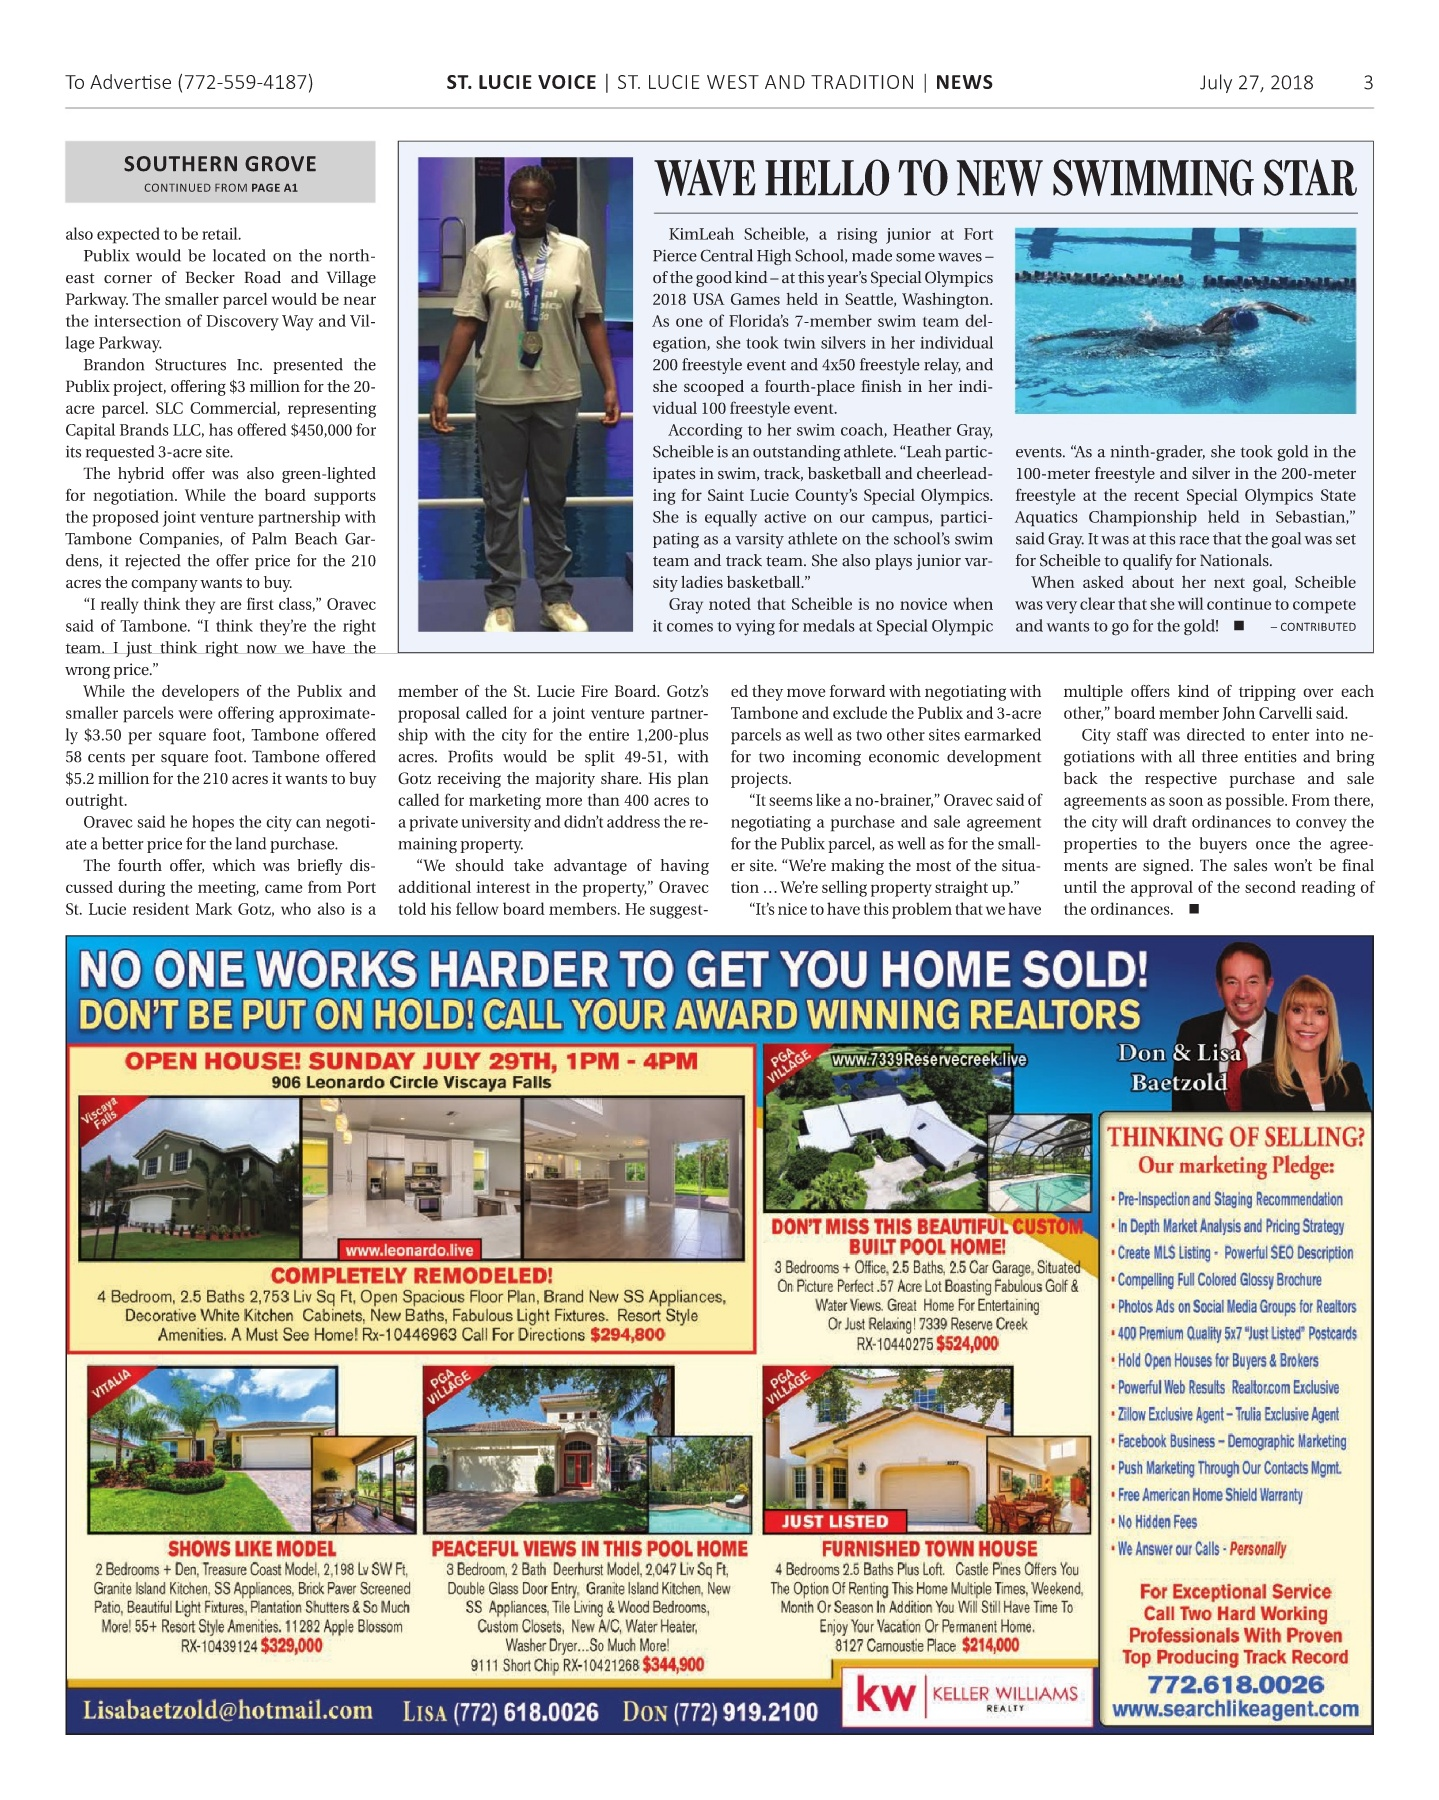 Lionetto Mobili 07 27 2018 Issue 30 Pages 1 44 Text Version Anyflip